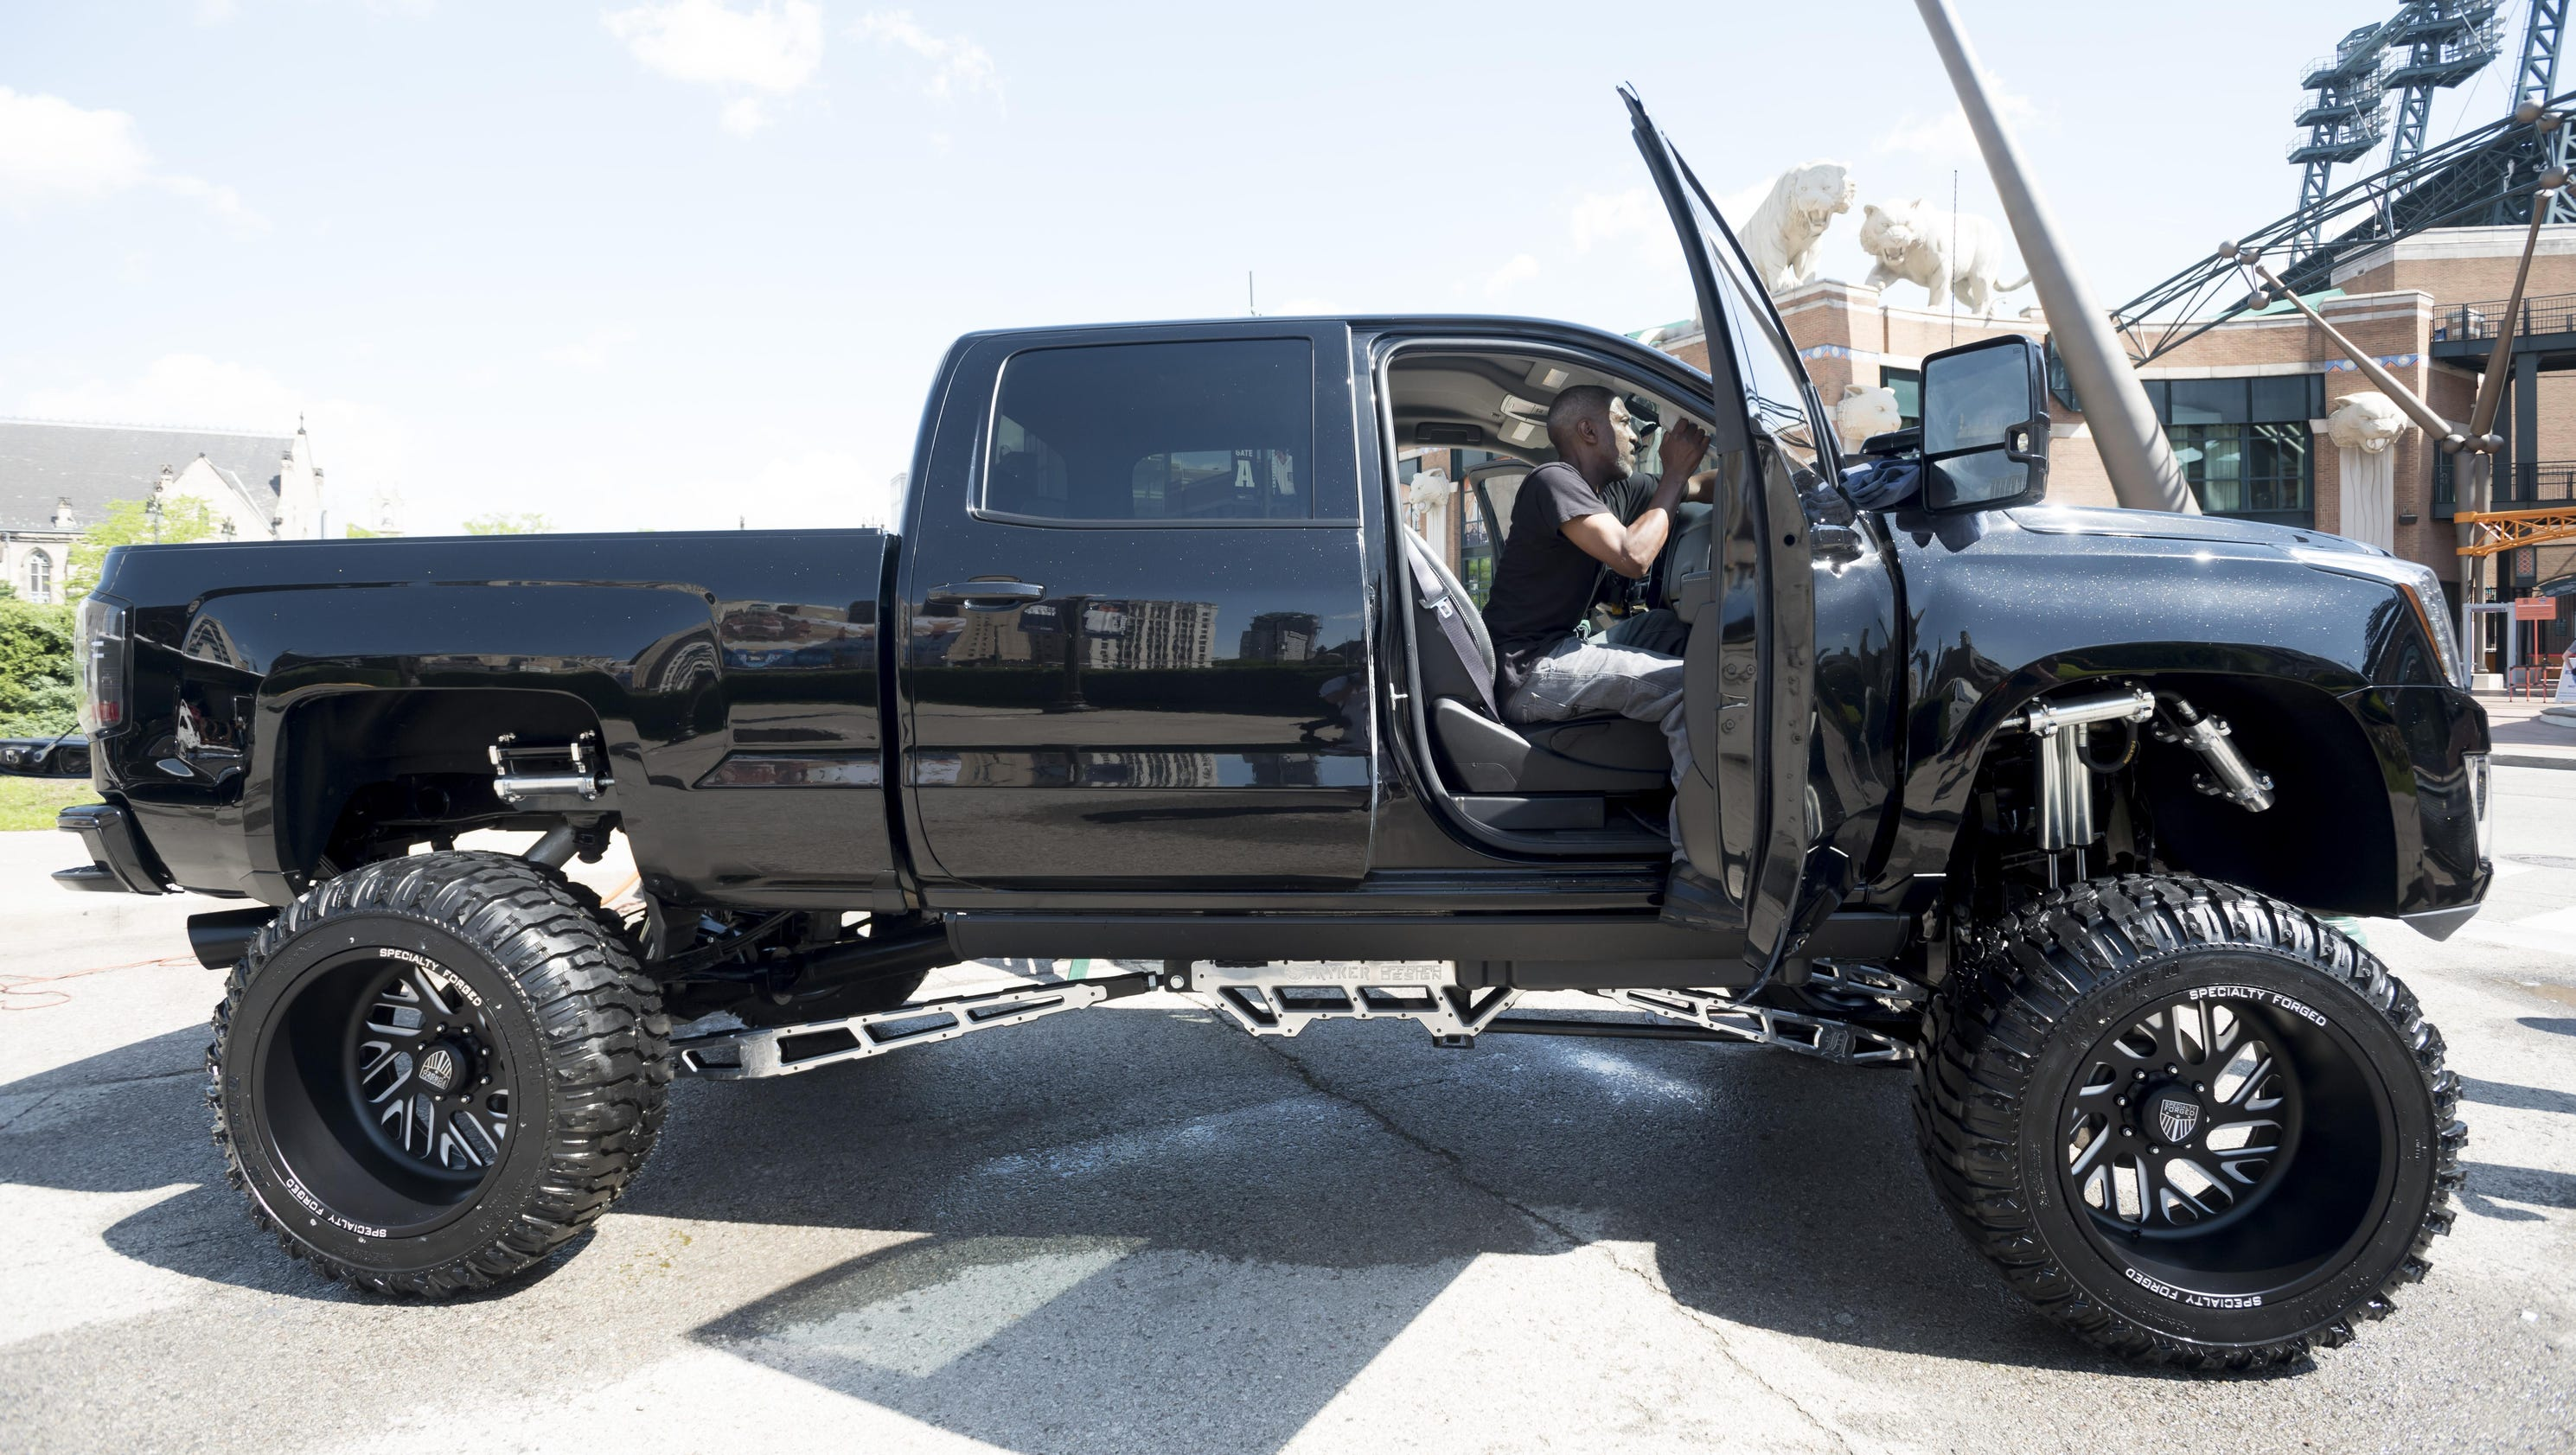 Cabrera's truck gets starring role on 'Diesel Brothers'